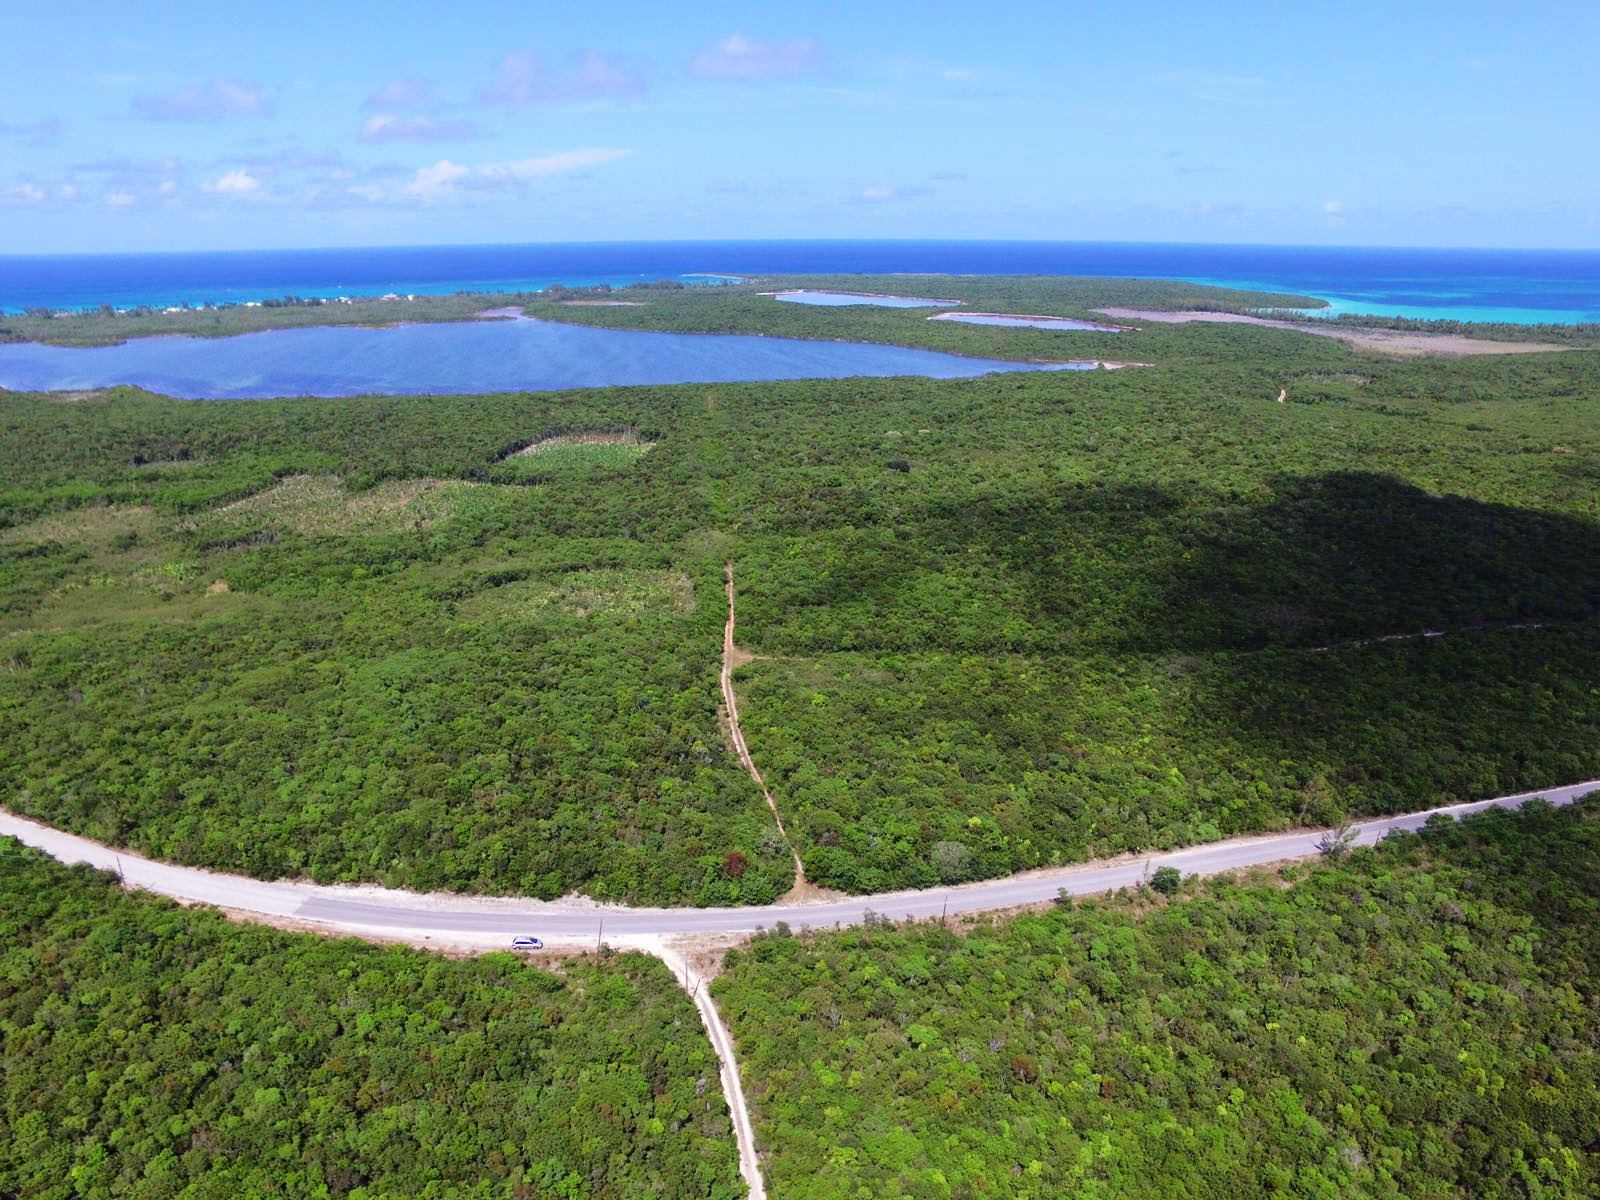 Land for Sale at Exceptionally Priced Lots near Ten Bay / MLS 27986 Eleuthera, Bahamas